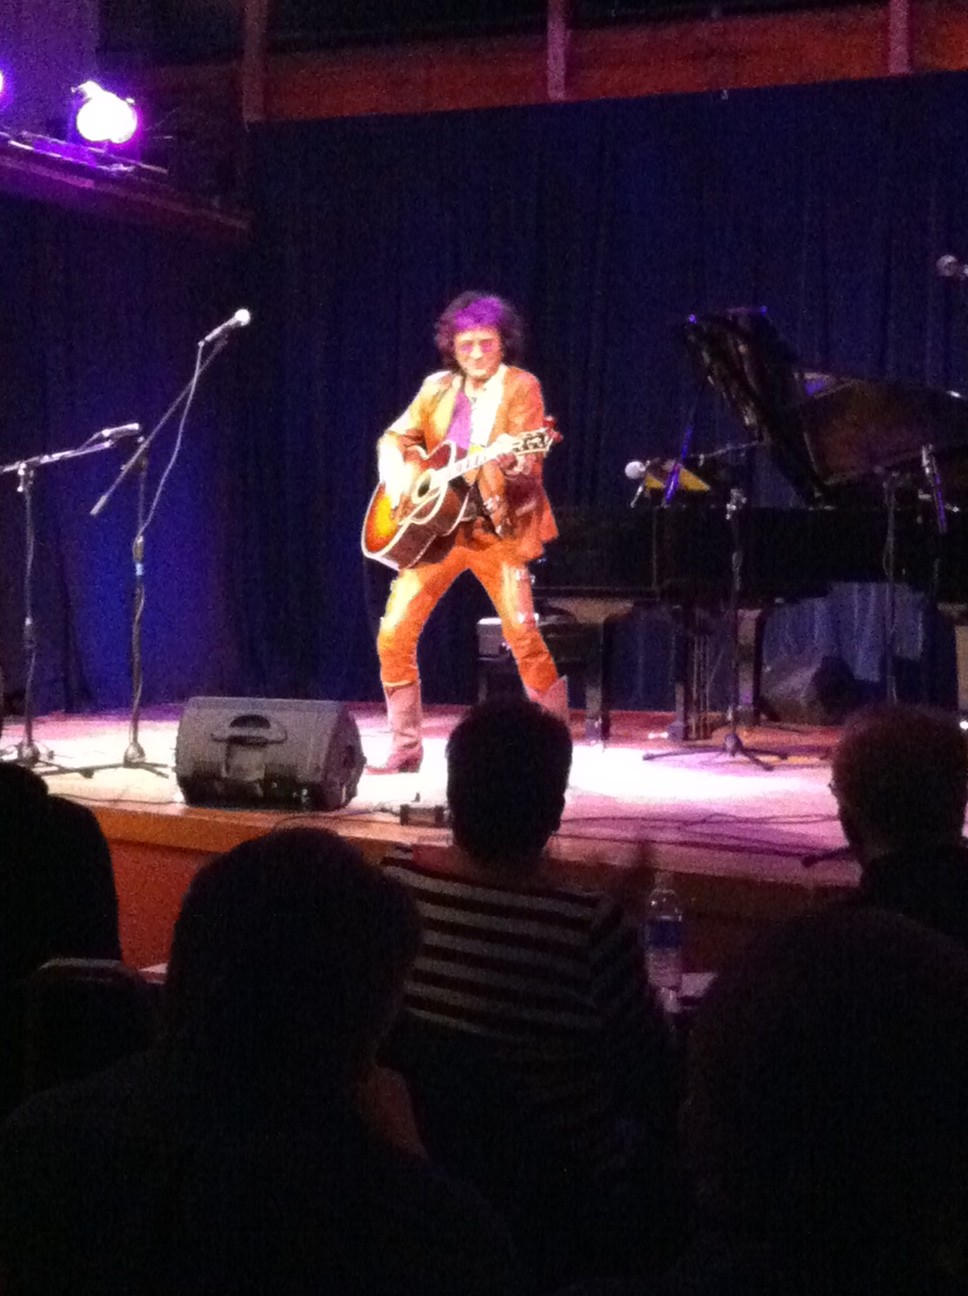 Singer Songwriter Finalist Competition at The Acorn Theater